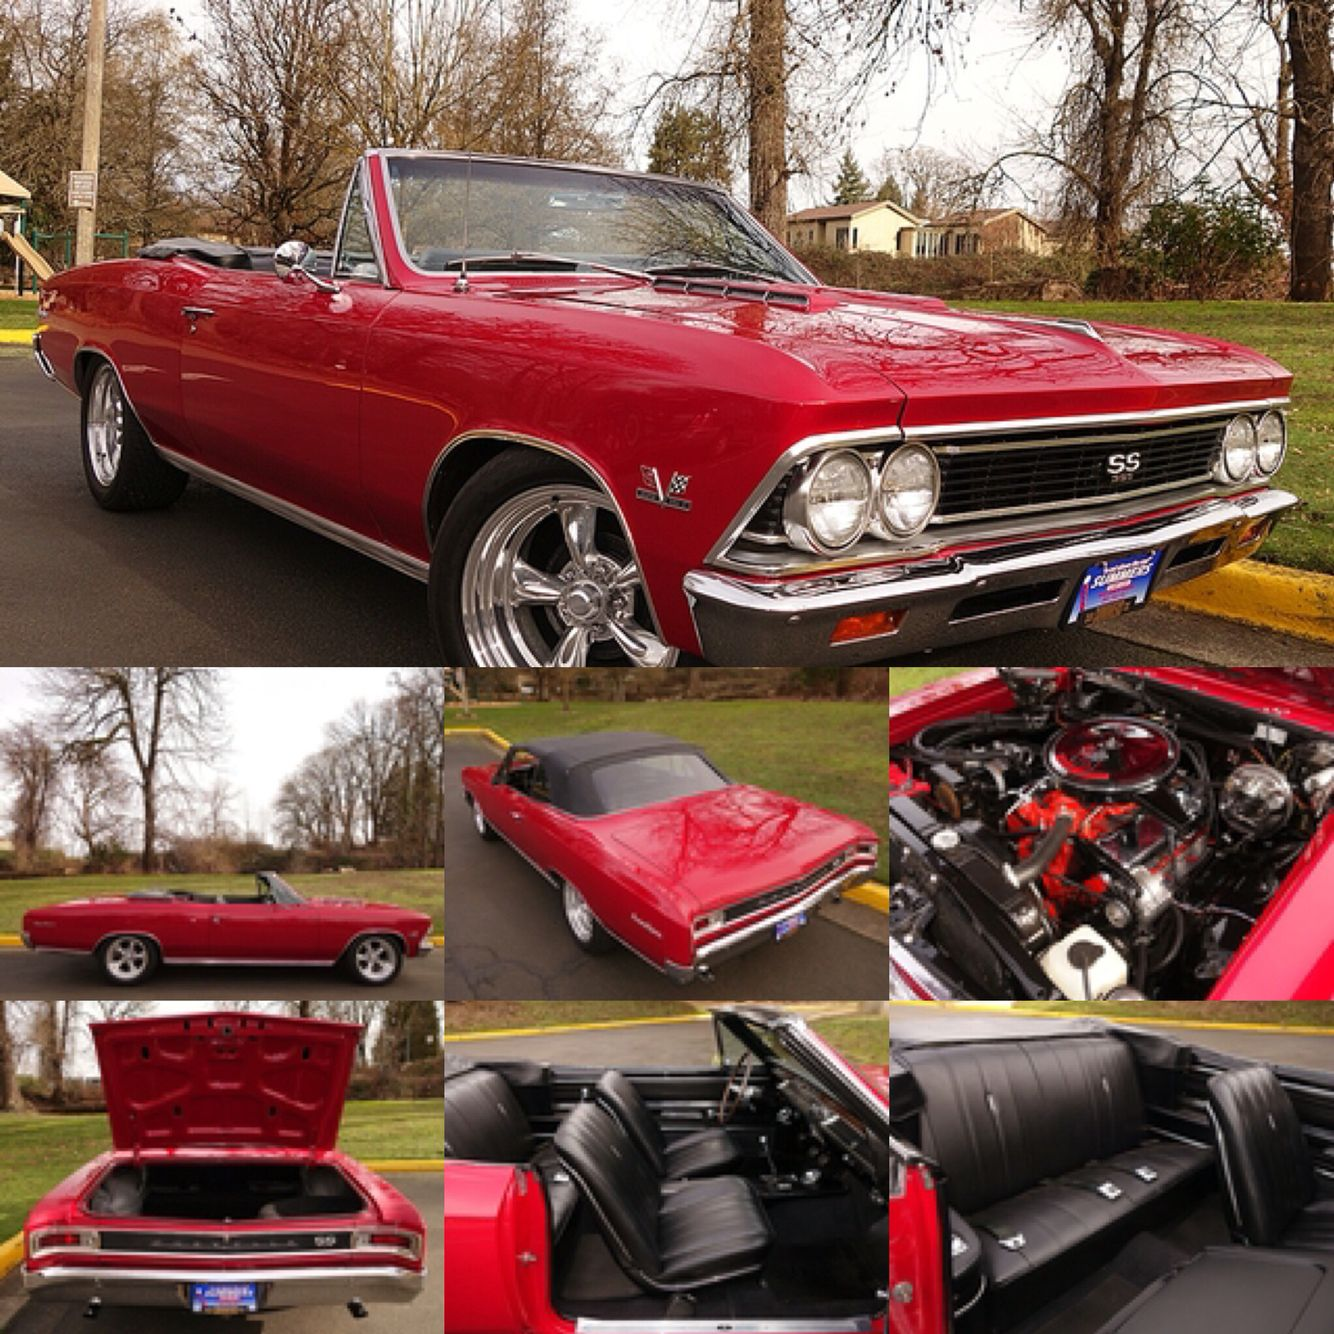 Beautiful 1966 Chevrolet Chevelle Ss Convertible Frame Off Restored Chevy Impala With Great Attention To Detail Throughout